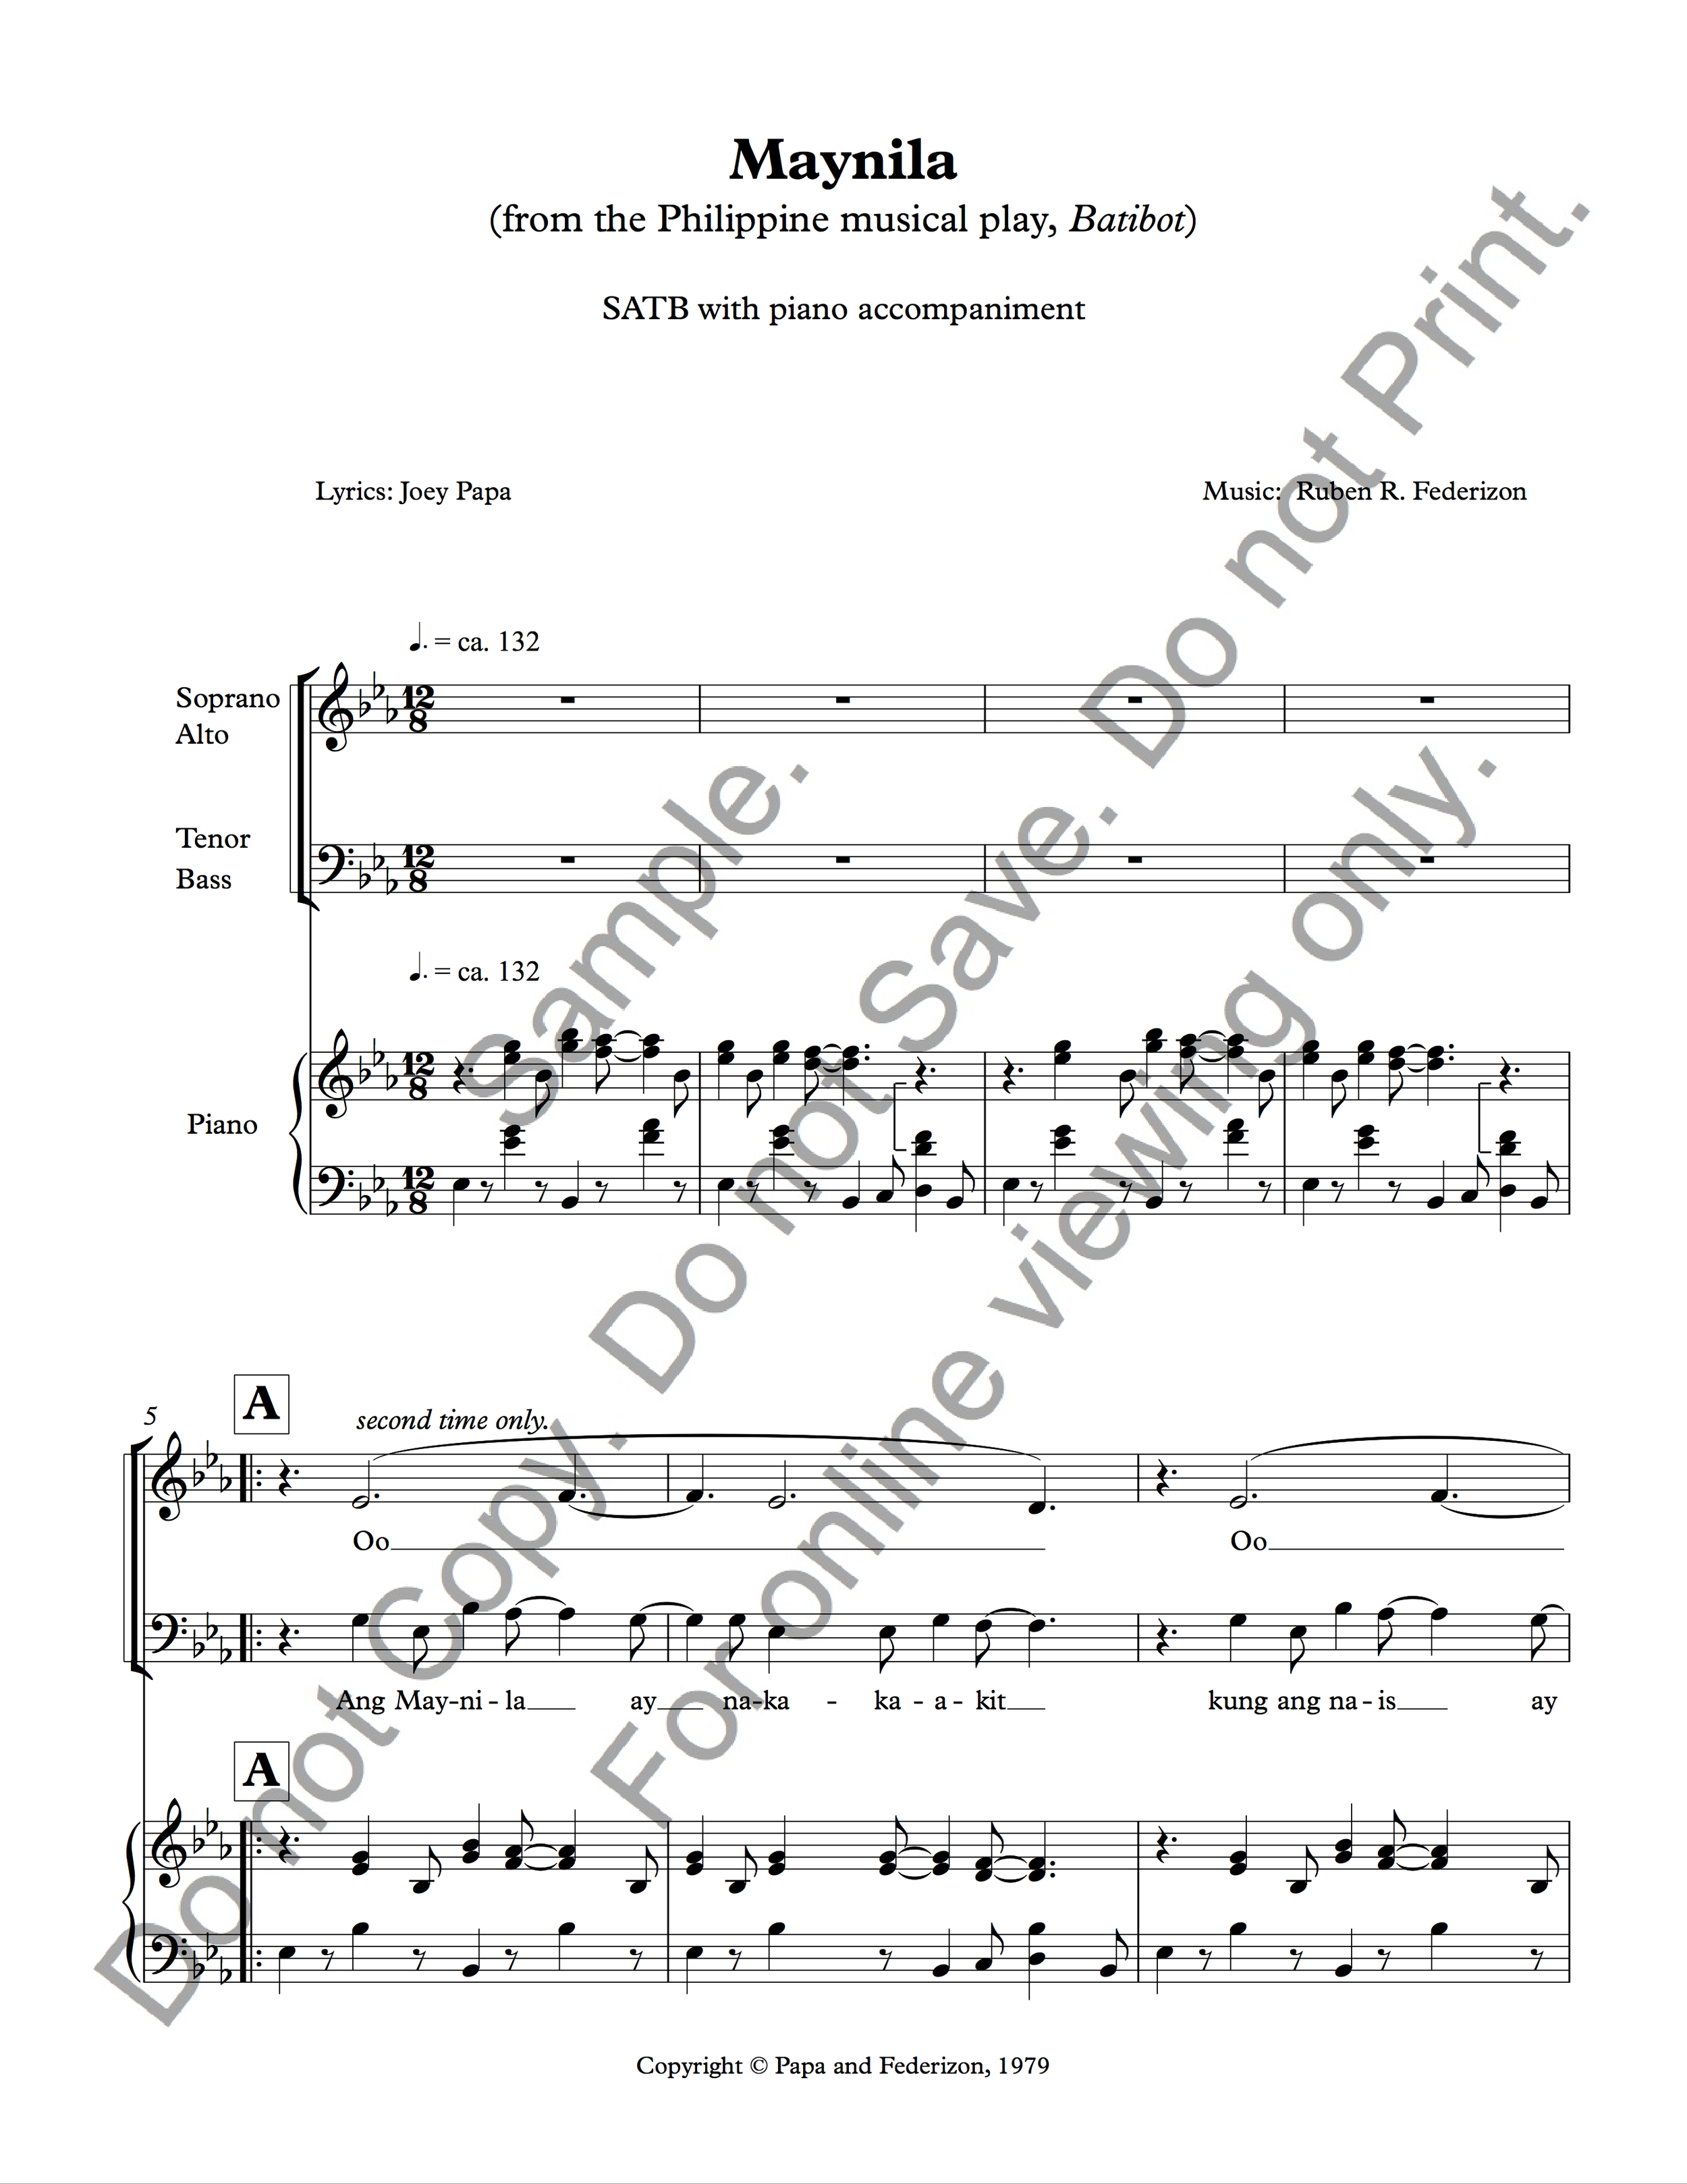 Maynila (new arr)_0002.png